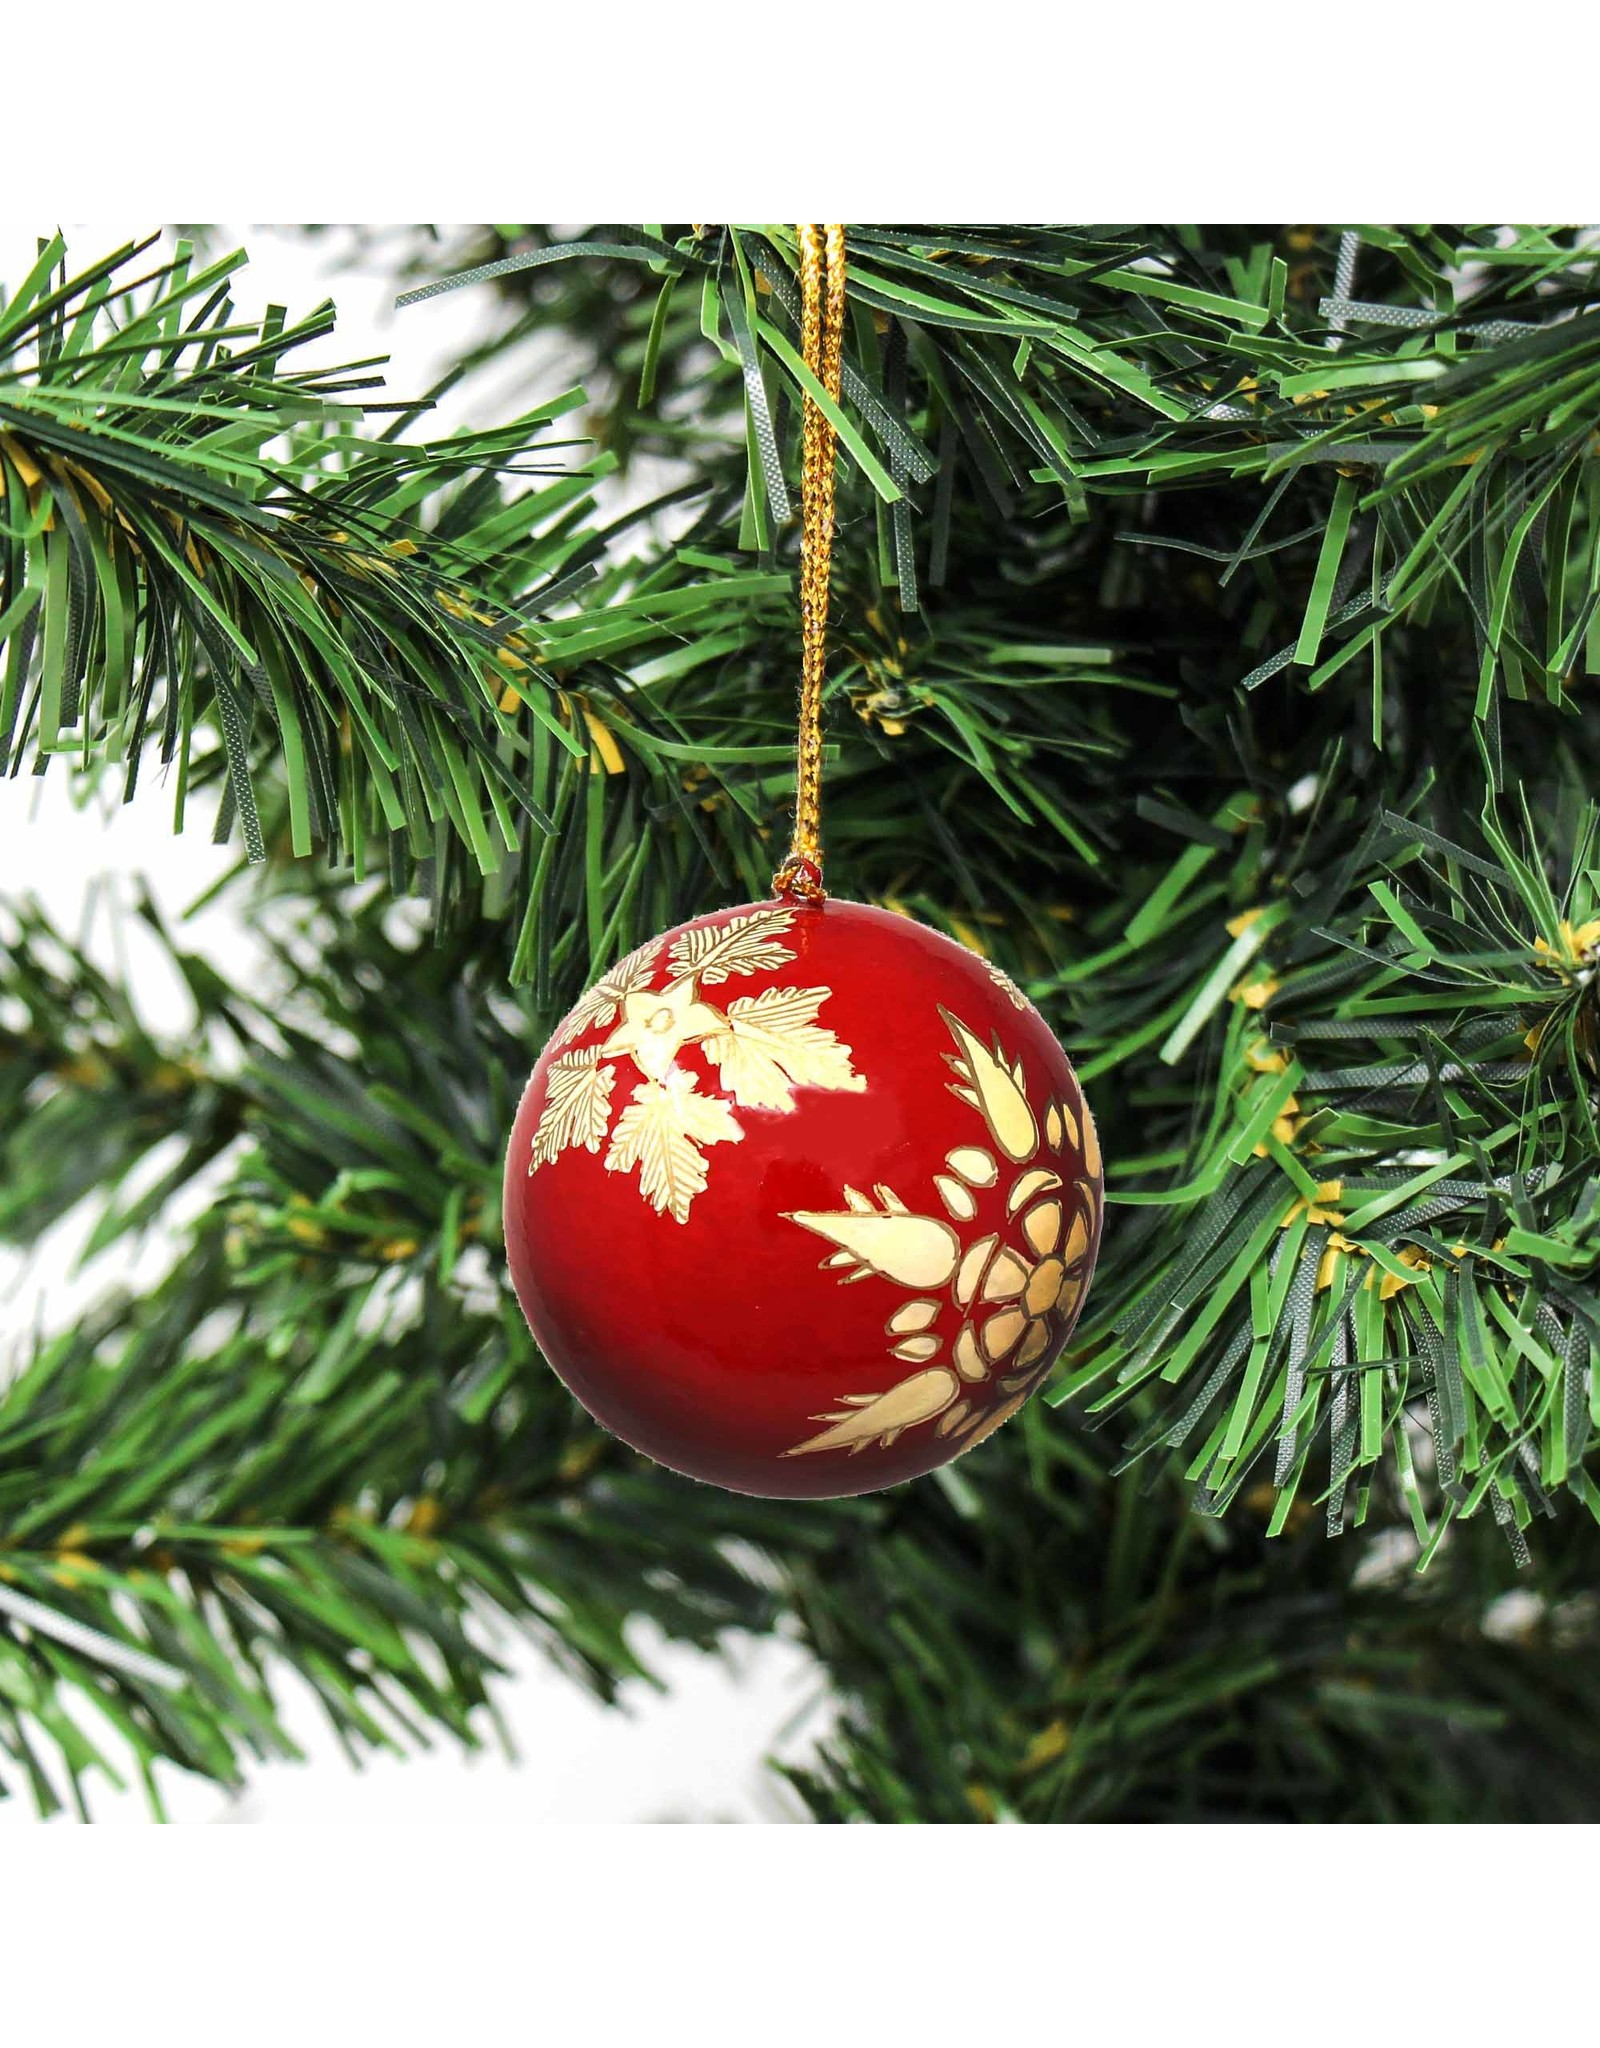 Global Crafts Handpainted Paper Mache Ornament, Red Snowflake. India